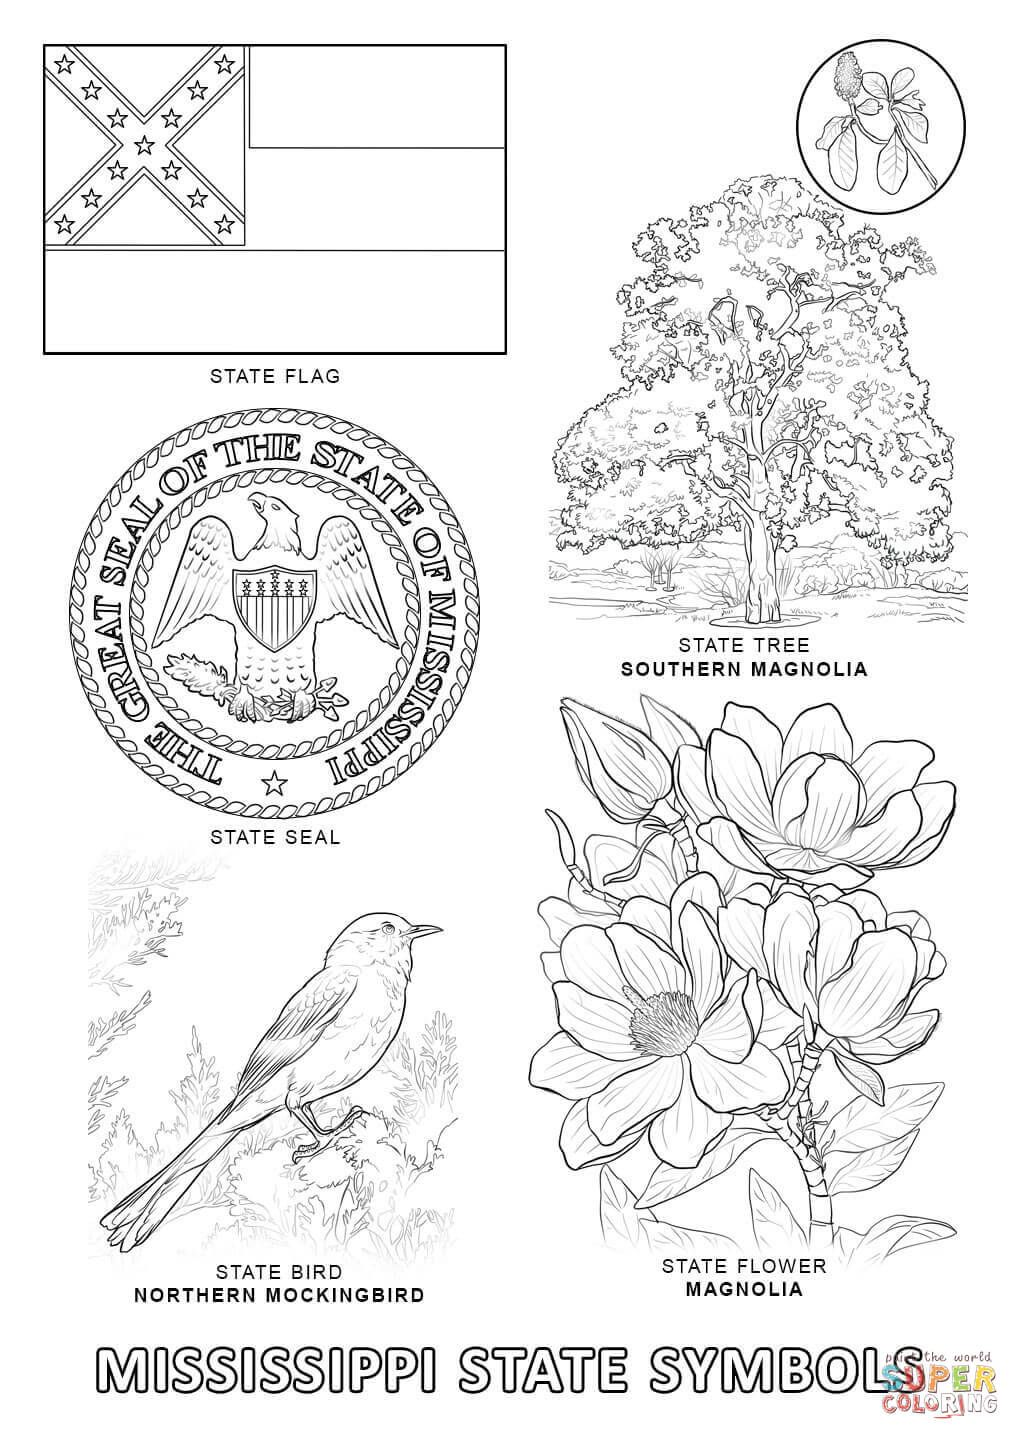 Mississippi State Symbols Coloring Page